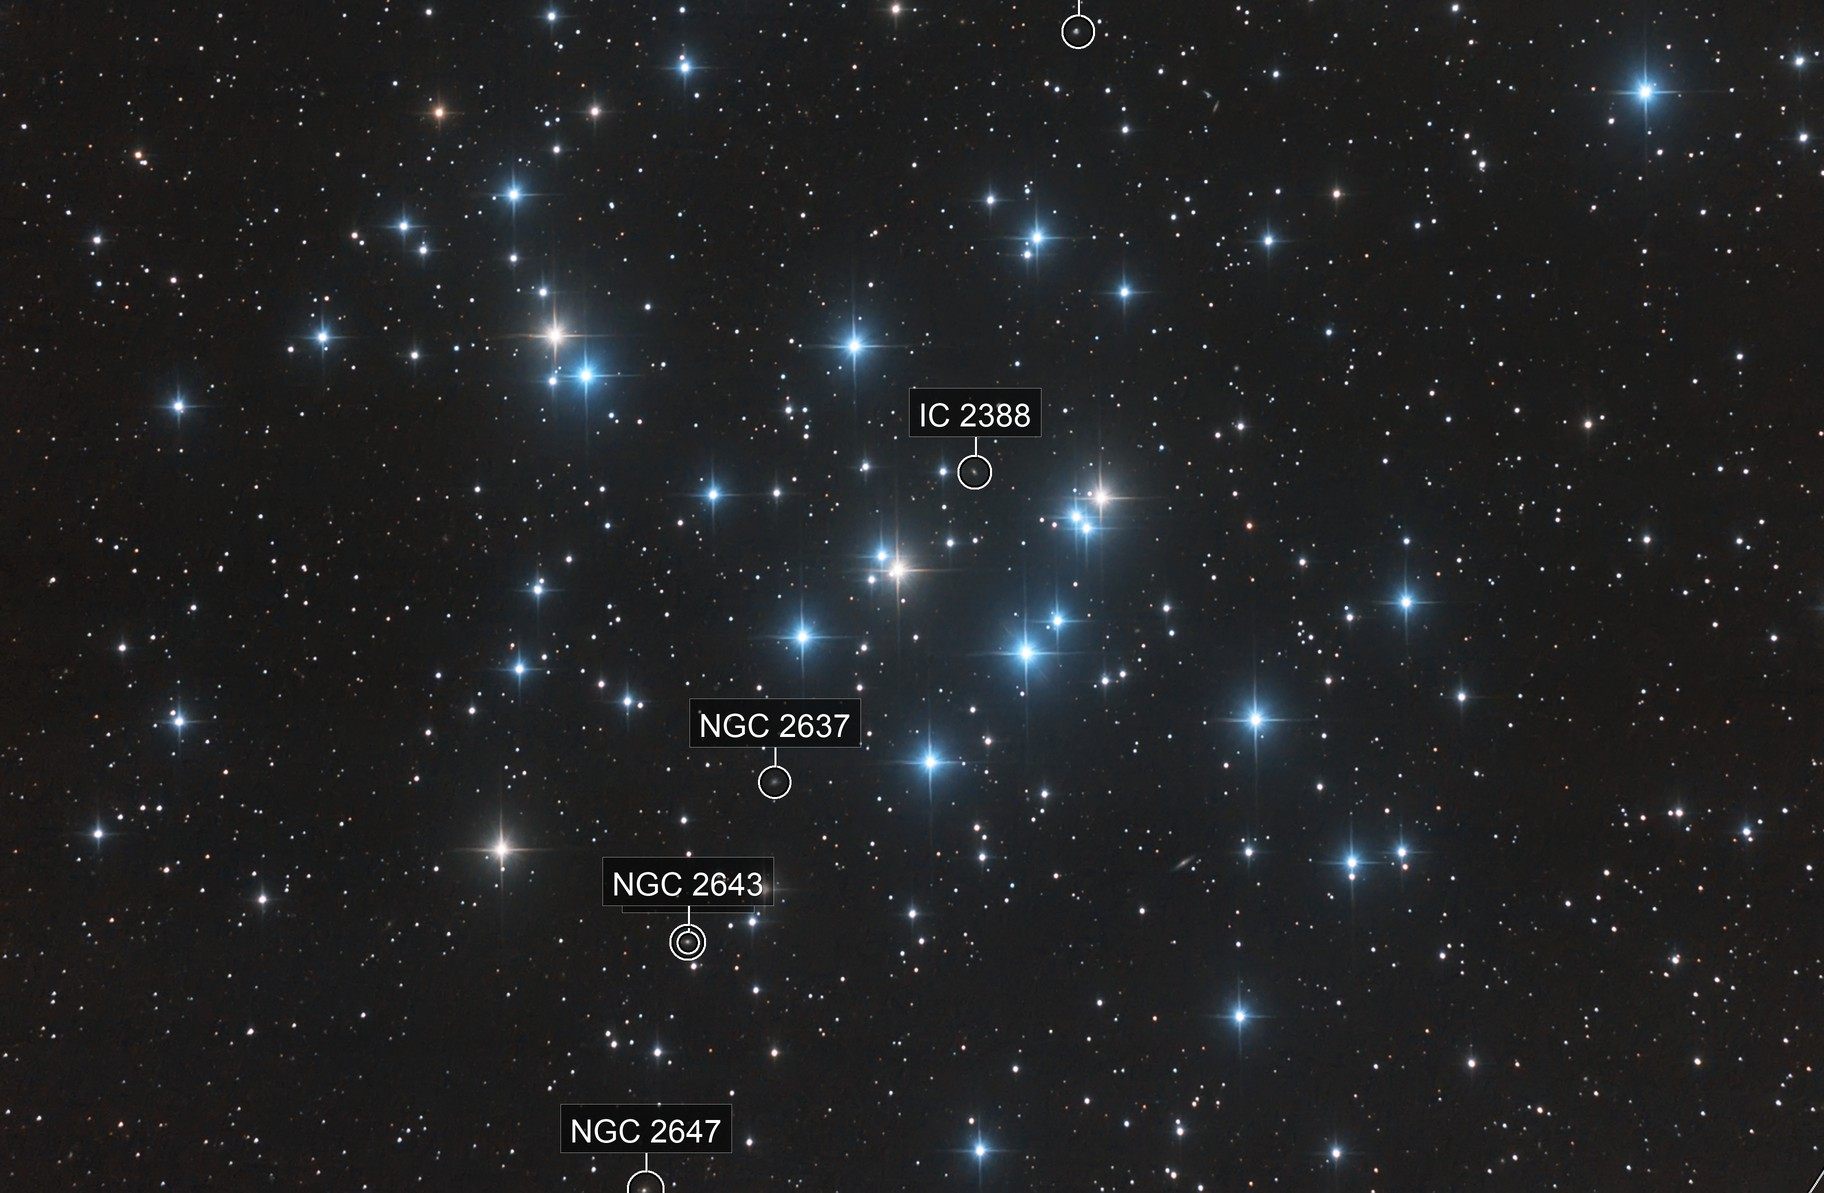 Messier 44: The Beehive Cluster